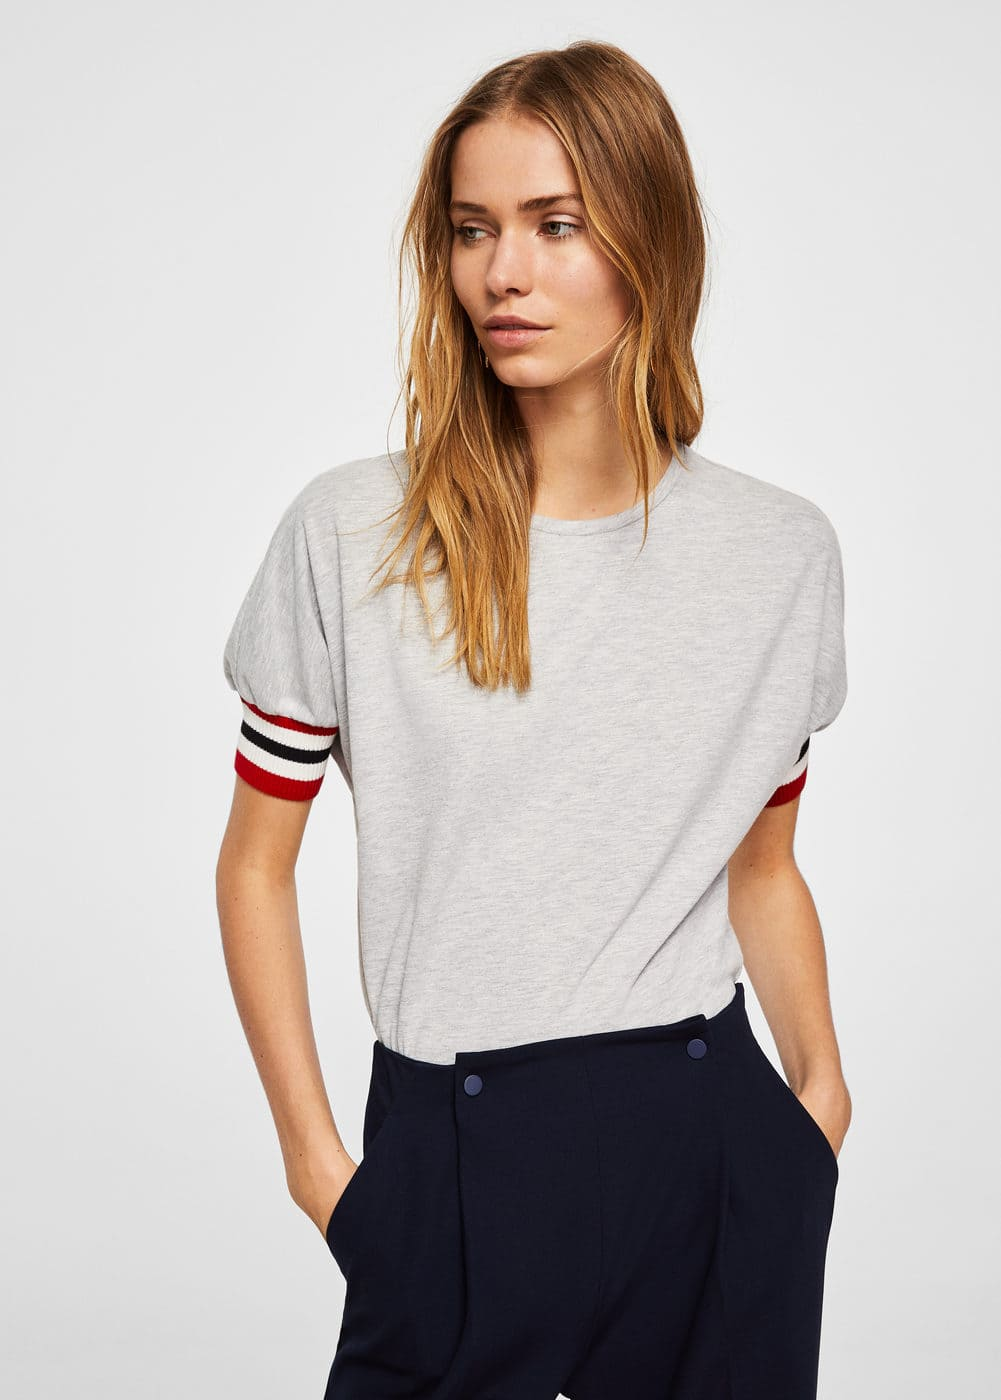 Wholesale Womens Tops and Shirts Online  Parisian